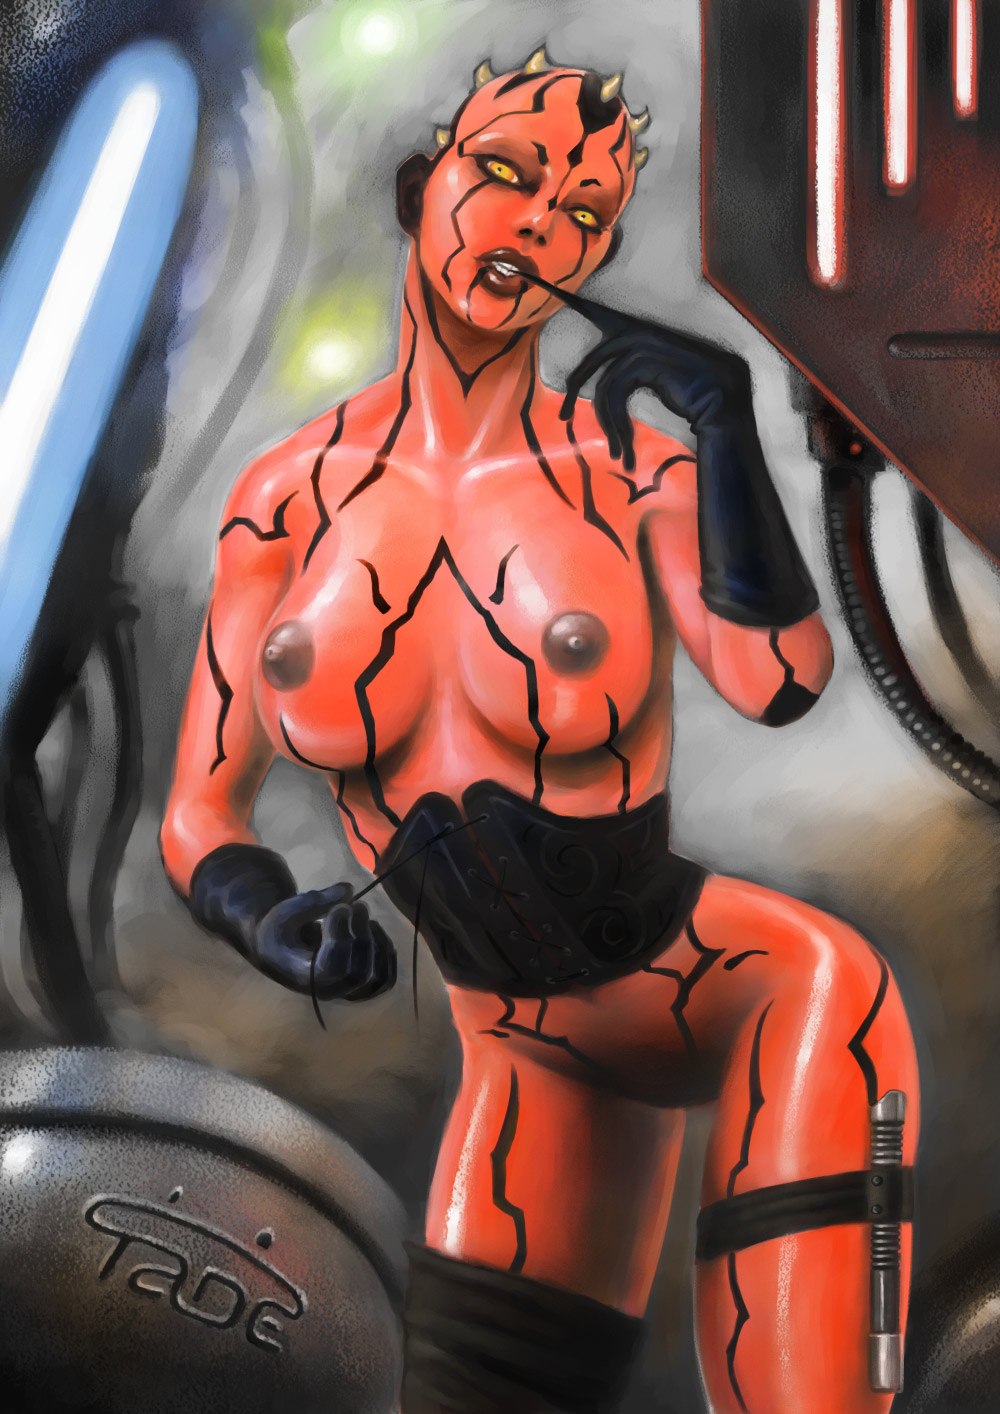 Star wars hentai wallpapers hentai image